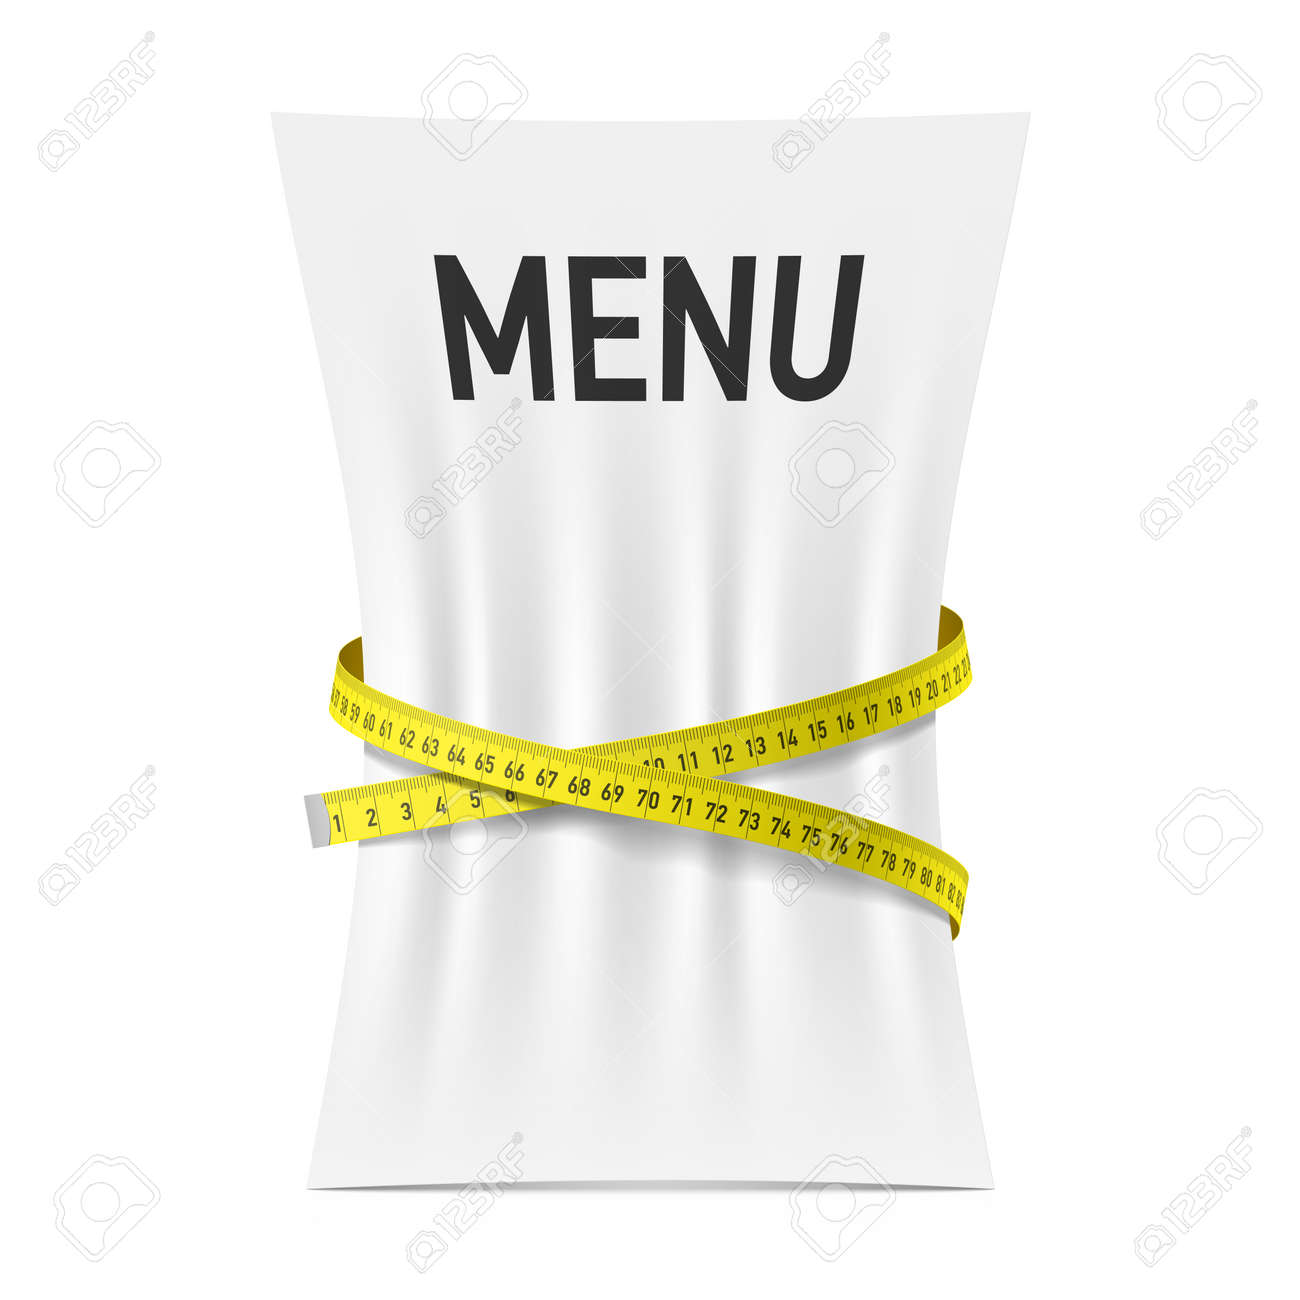 Menu squeezed by measuring tape, diet theme concept - 35793731